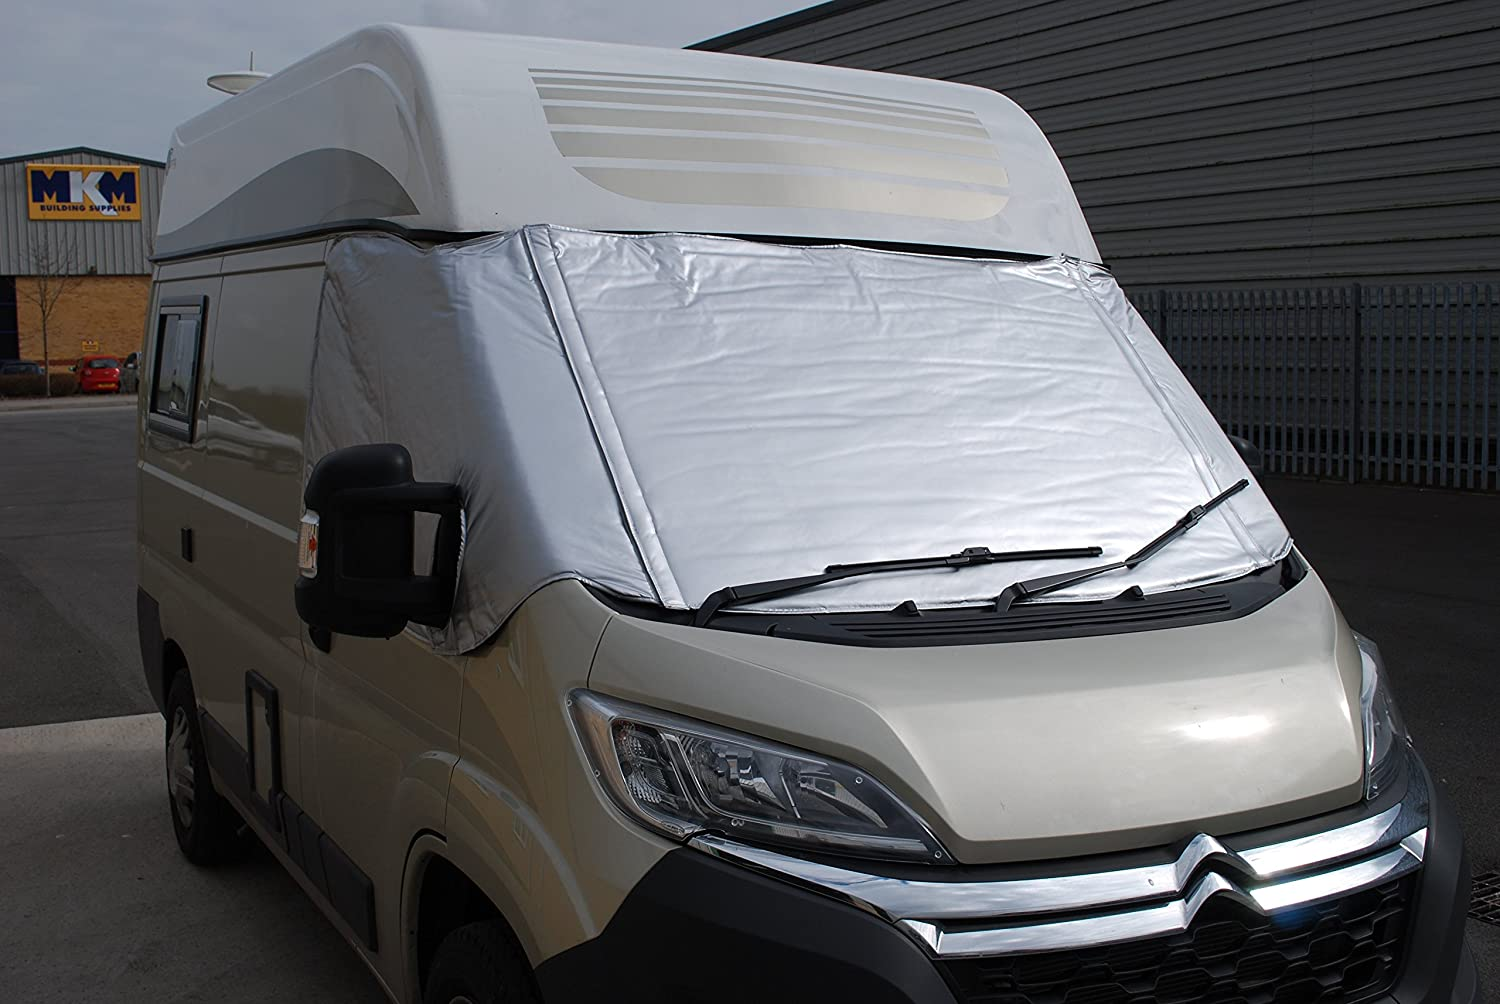 FIAT DUCATO SILVER INSULATION SCREEN 2006 ONWARDS WITH FOLD DOWN FRONT VC26FI0201